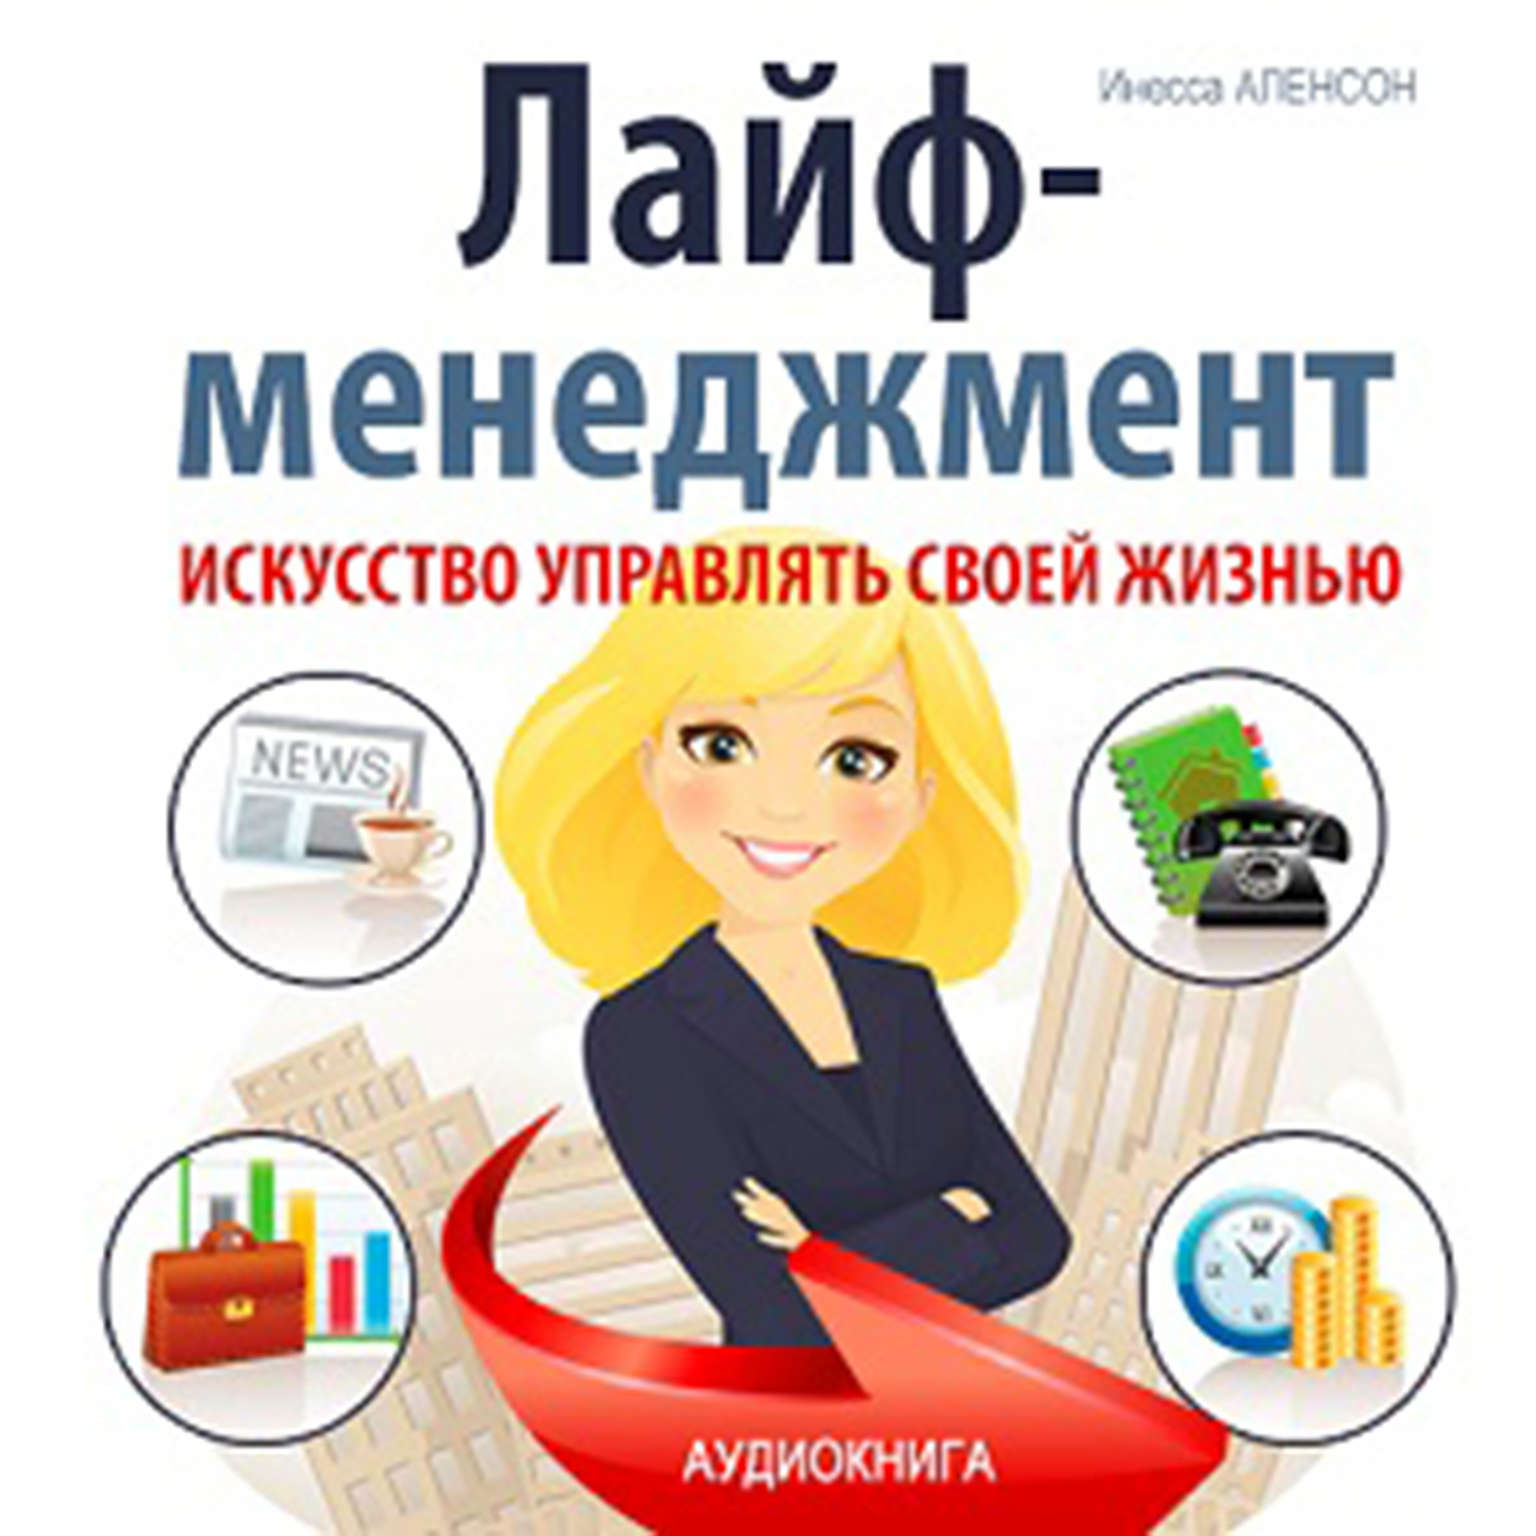 Life Management: The Art of Managing Your life [Russian Edition] Audiobook, by Inessa Alenson